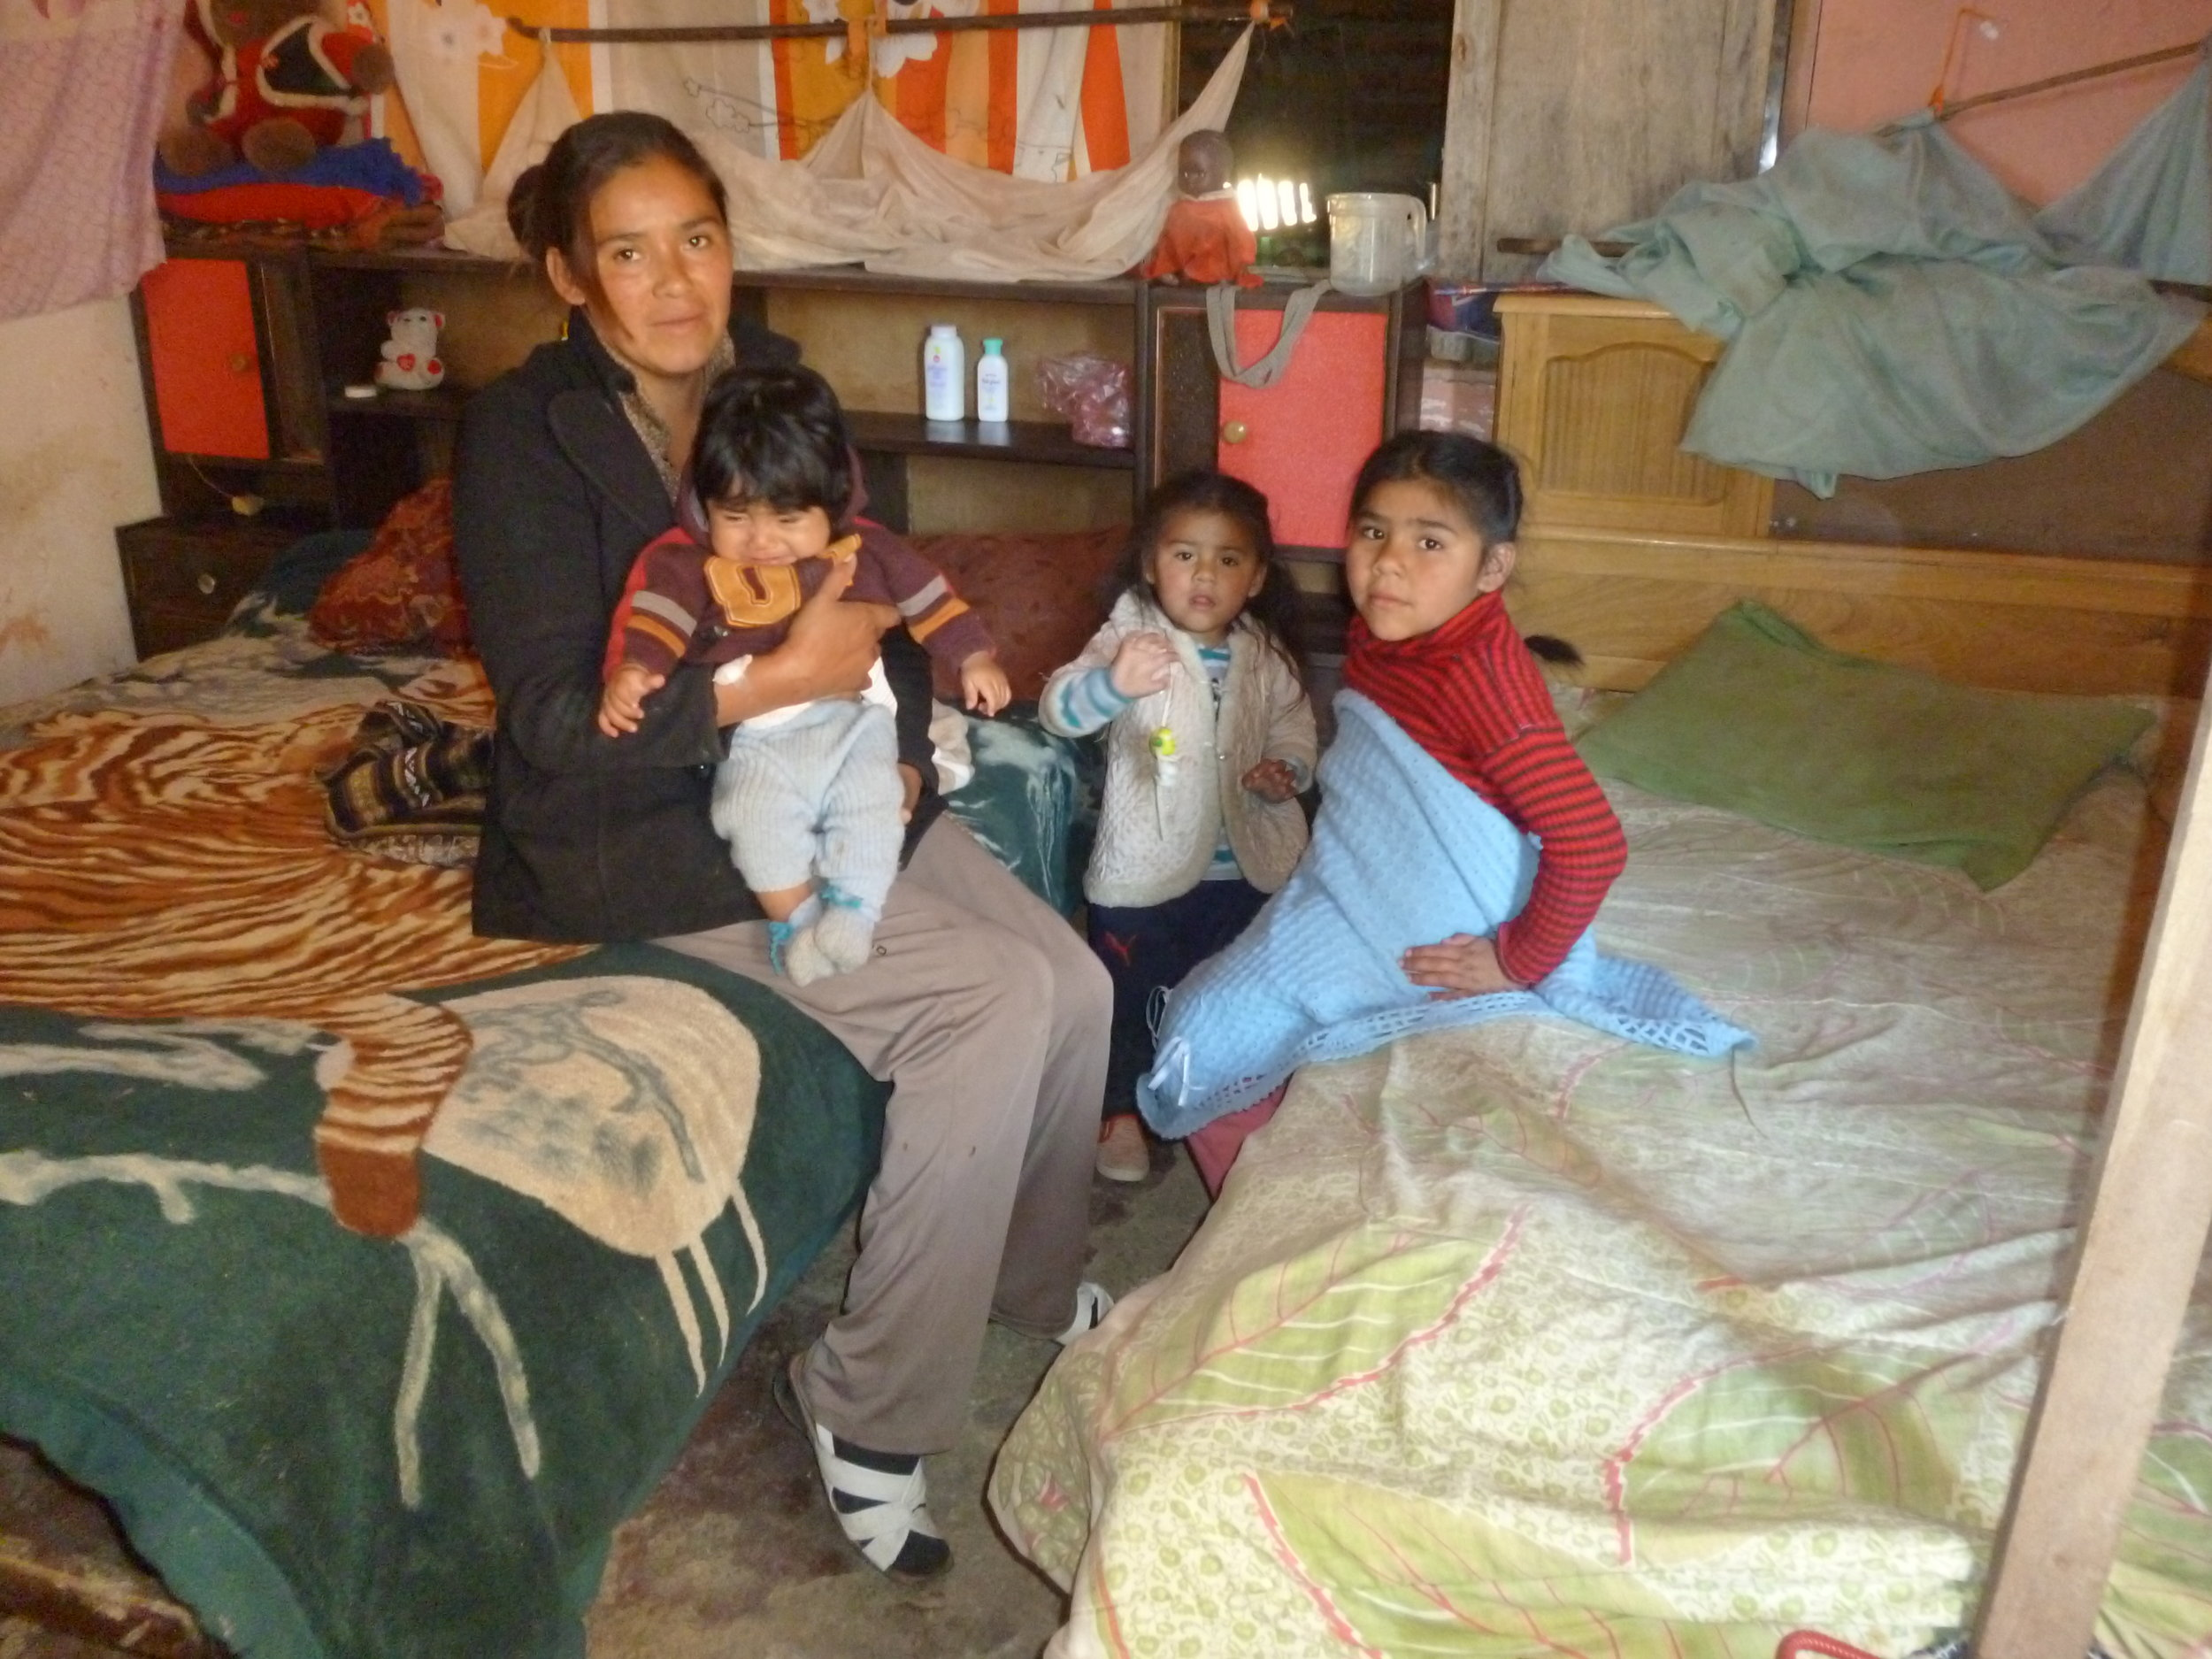 Norma, 36 - Norma, a mother of five, received her first pacemaker at the age of 26. Ten years later the battery was depleted, but her family could not afford to replace it. Thanks to the Solidarity Bridge Pacemaker Program, Norma is back to chasing toddlers and to laying the bricks for her own house alongside her husband.